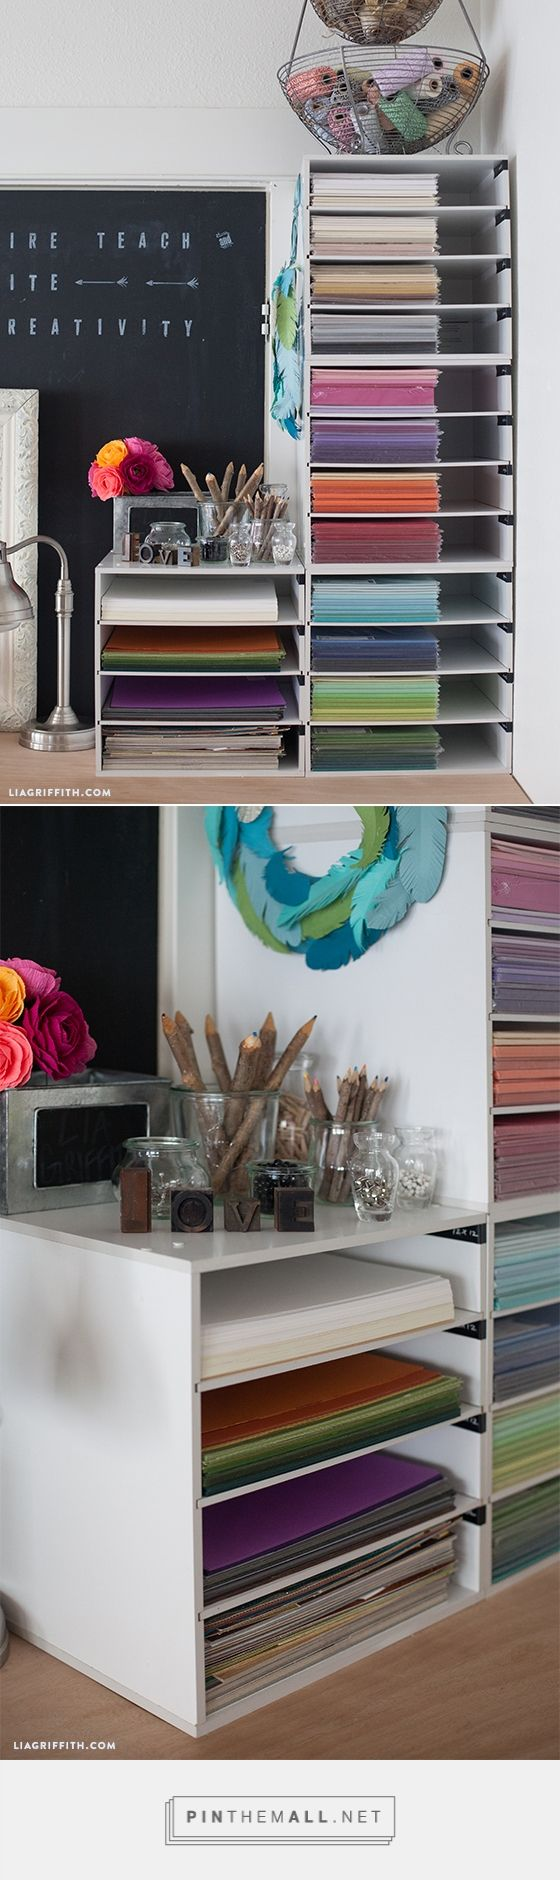 best organization images on pinterest apartments home ideas